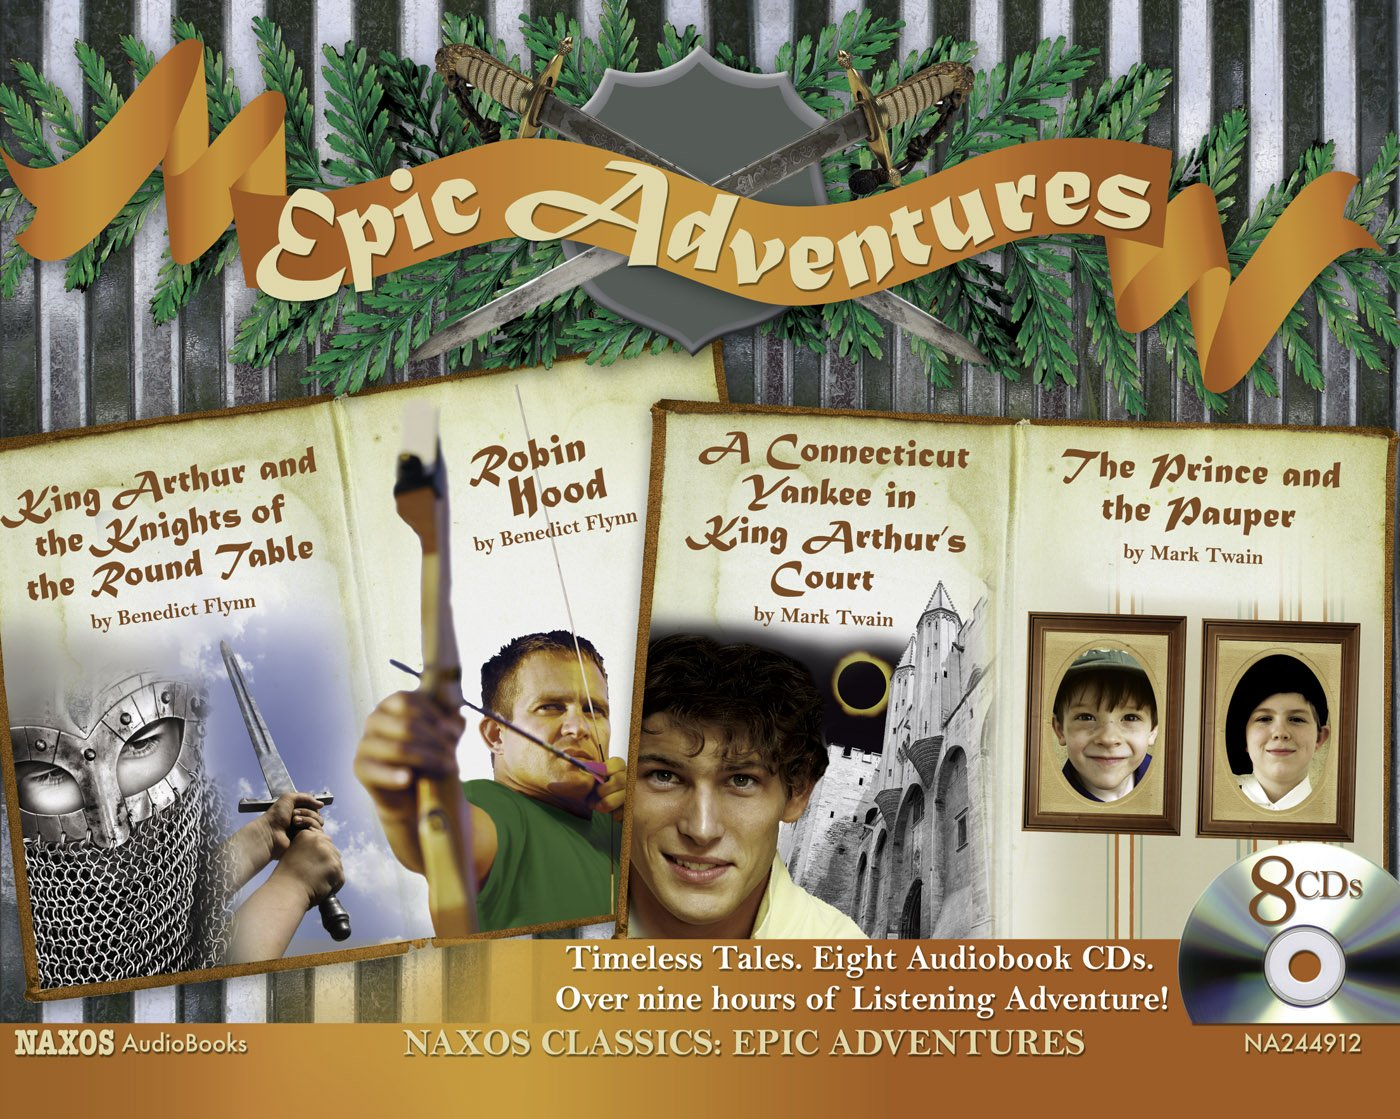 Epic Adventures: King Arthur and the Knights of the Round Table; Robin Hood; Connecticut Yankee in King Arthur's Court: The Prince and the Pauper (Naxos Classics)